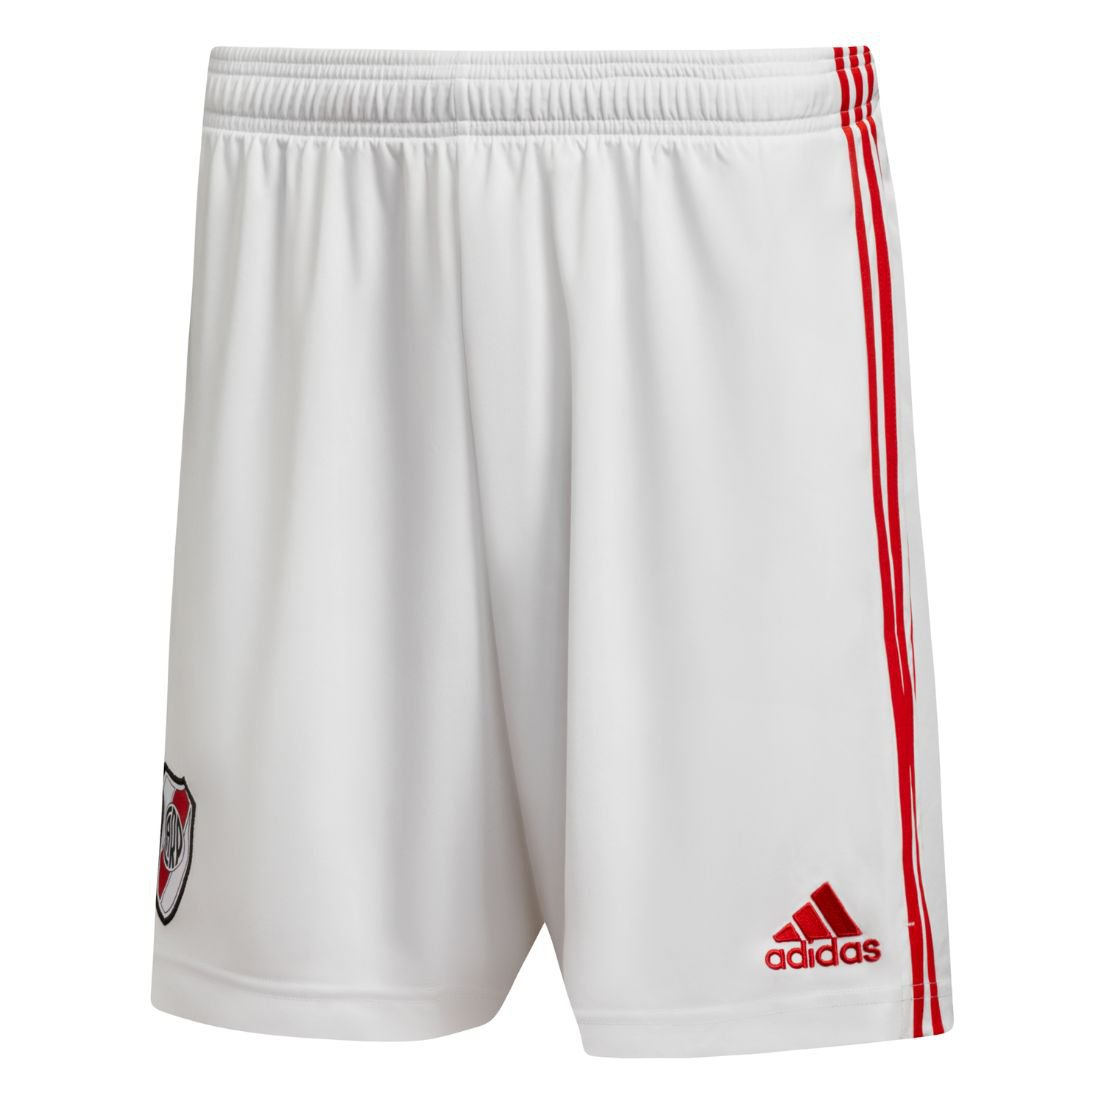 Short Blanco adidas River Plate 20/21